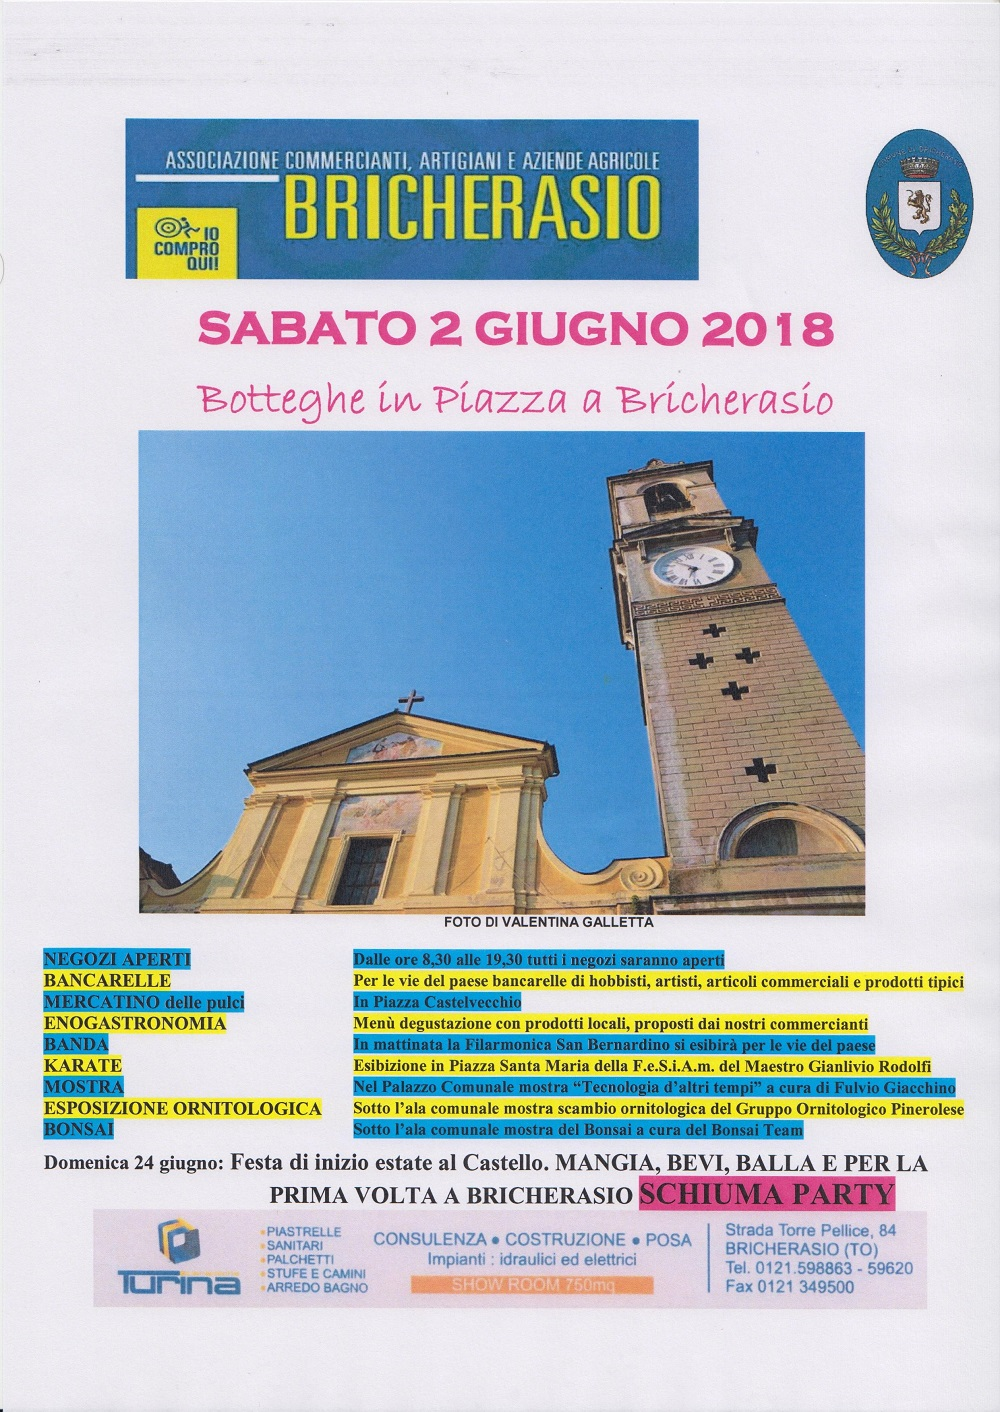 Botteghe%20in%20piazza%20(1)